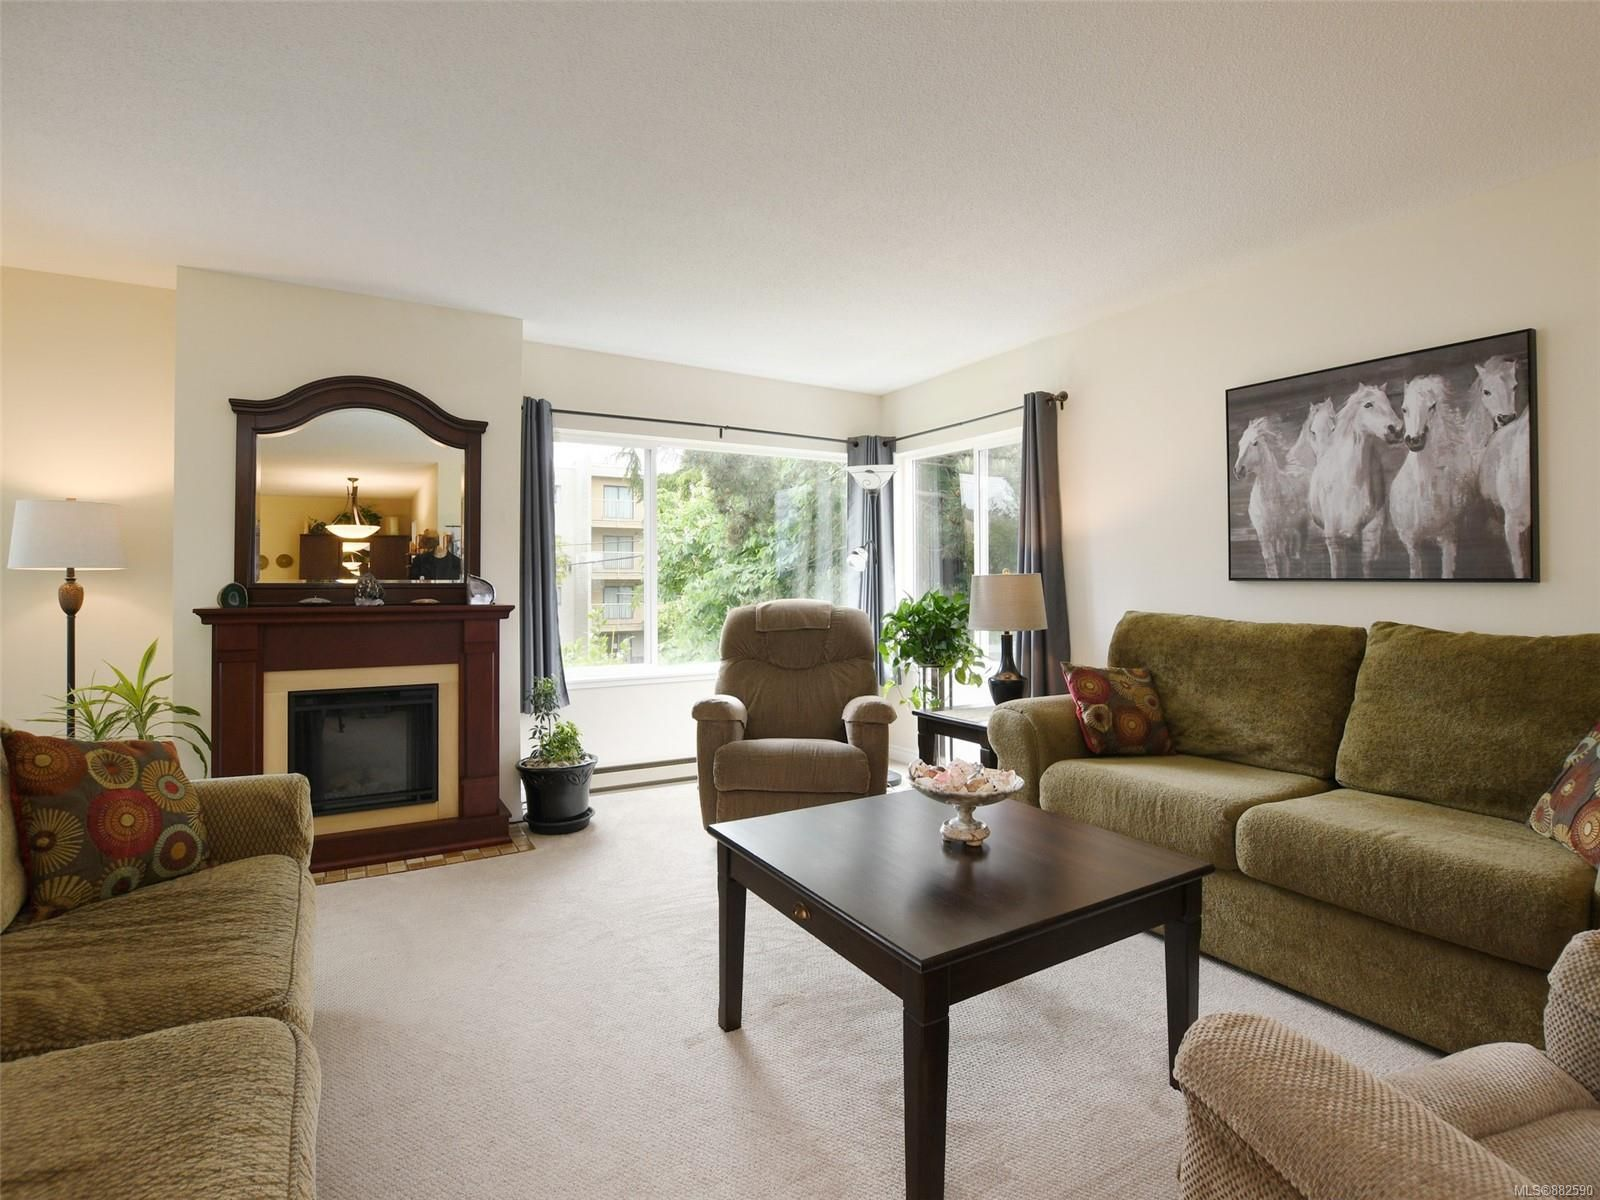 Fabulous 2 bedroom corner unit with oodles of natural light pouring in. Generous size living room. burning  Current owners have an electric fireplace in front of original wood burning fireplace.